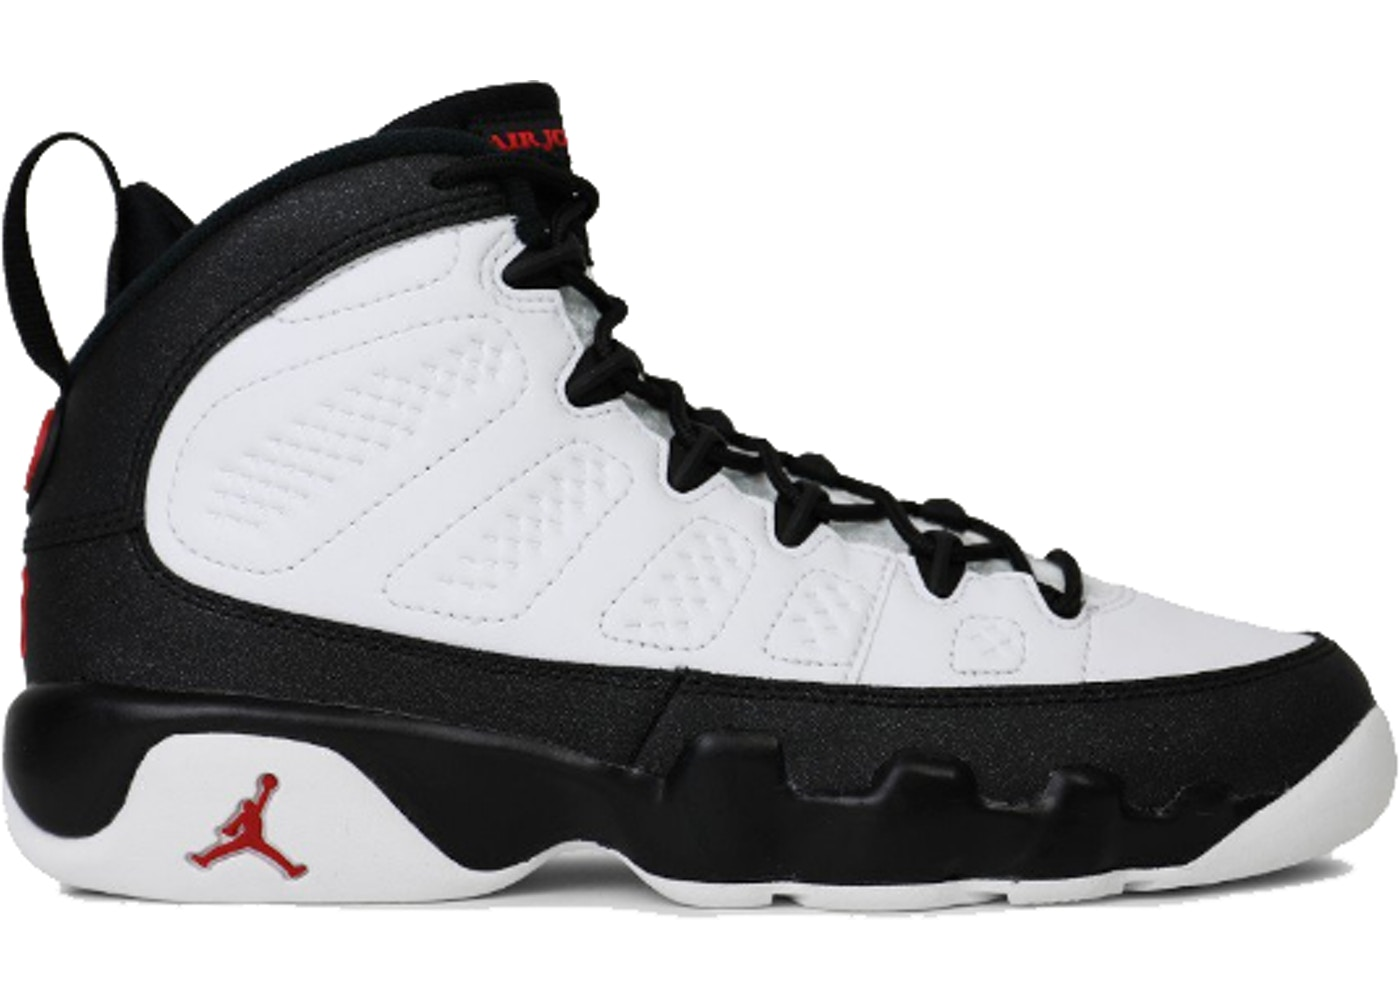 sports shoes 9e4a2 346e0 Jordan 9 Retro OG 2016 (GS)